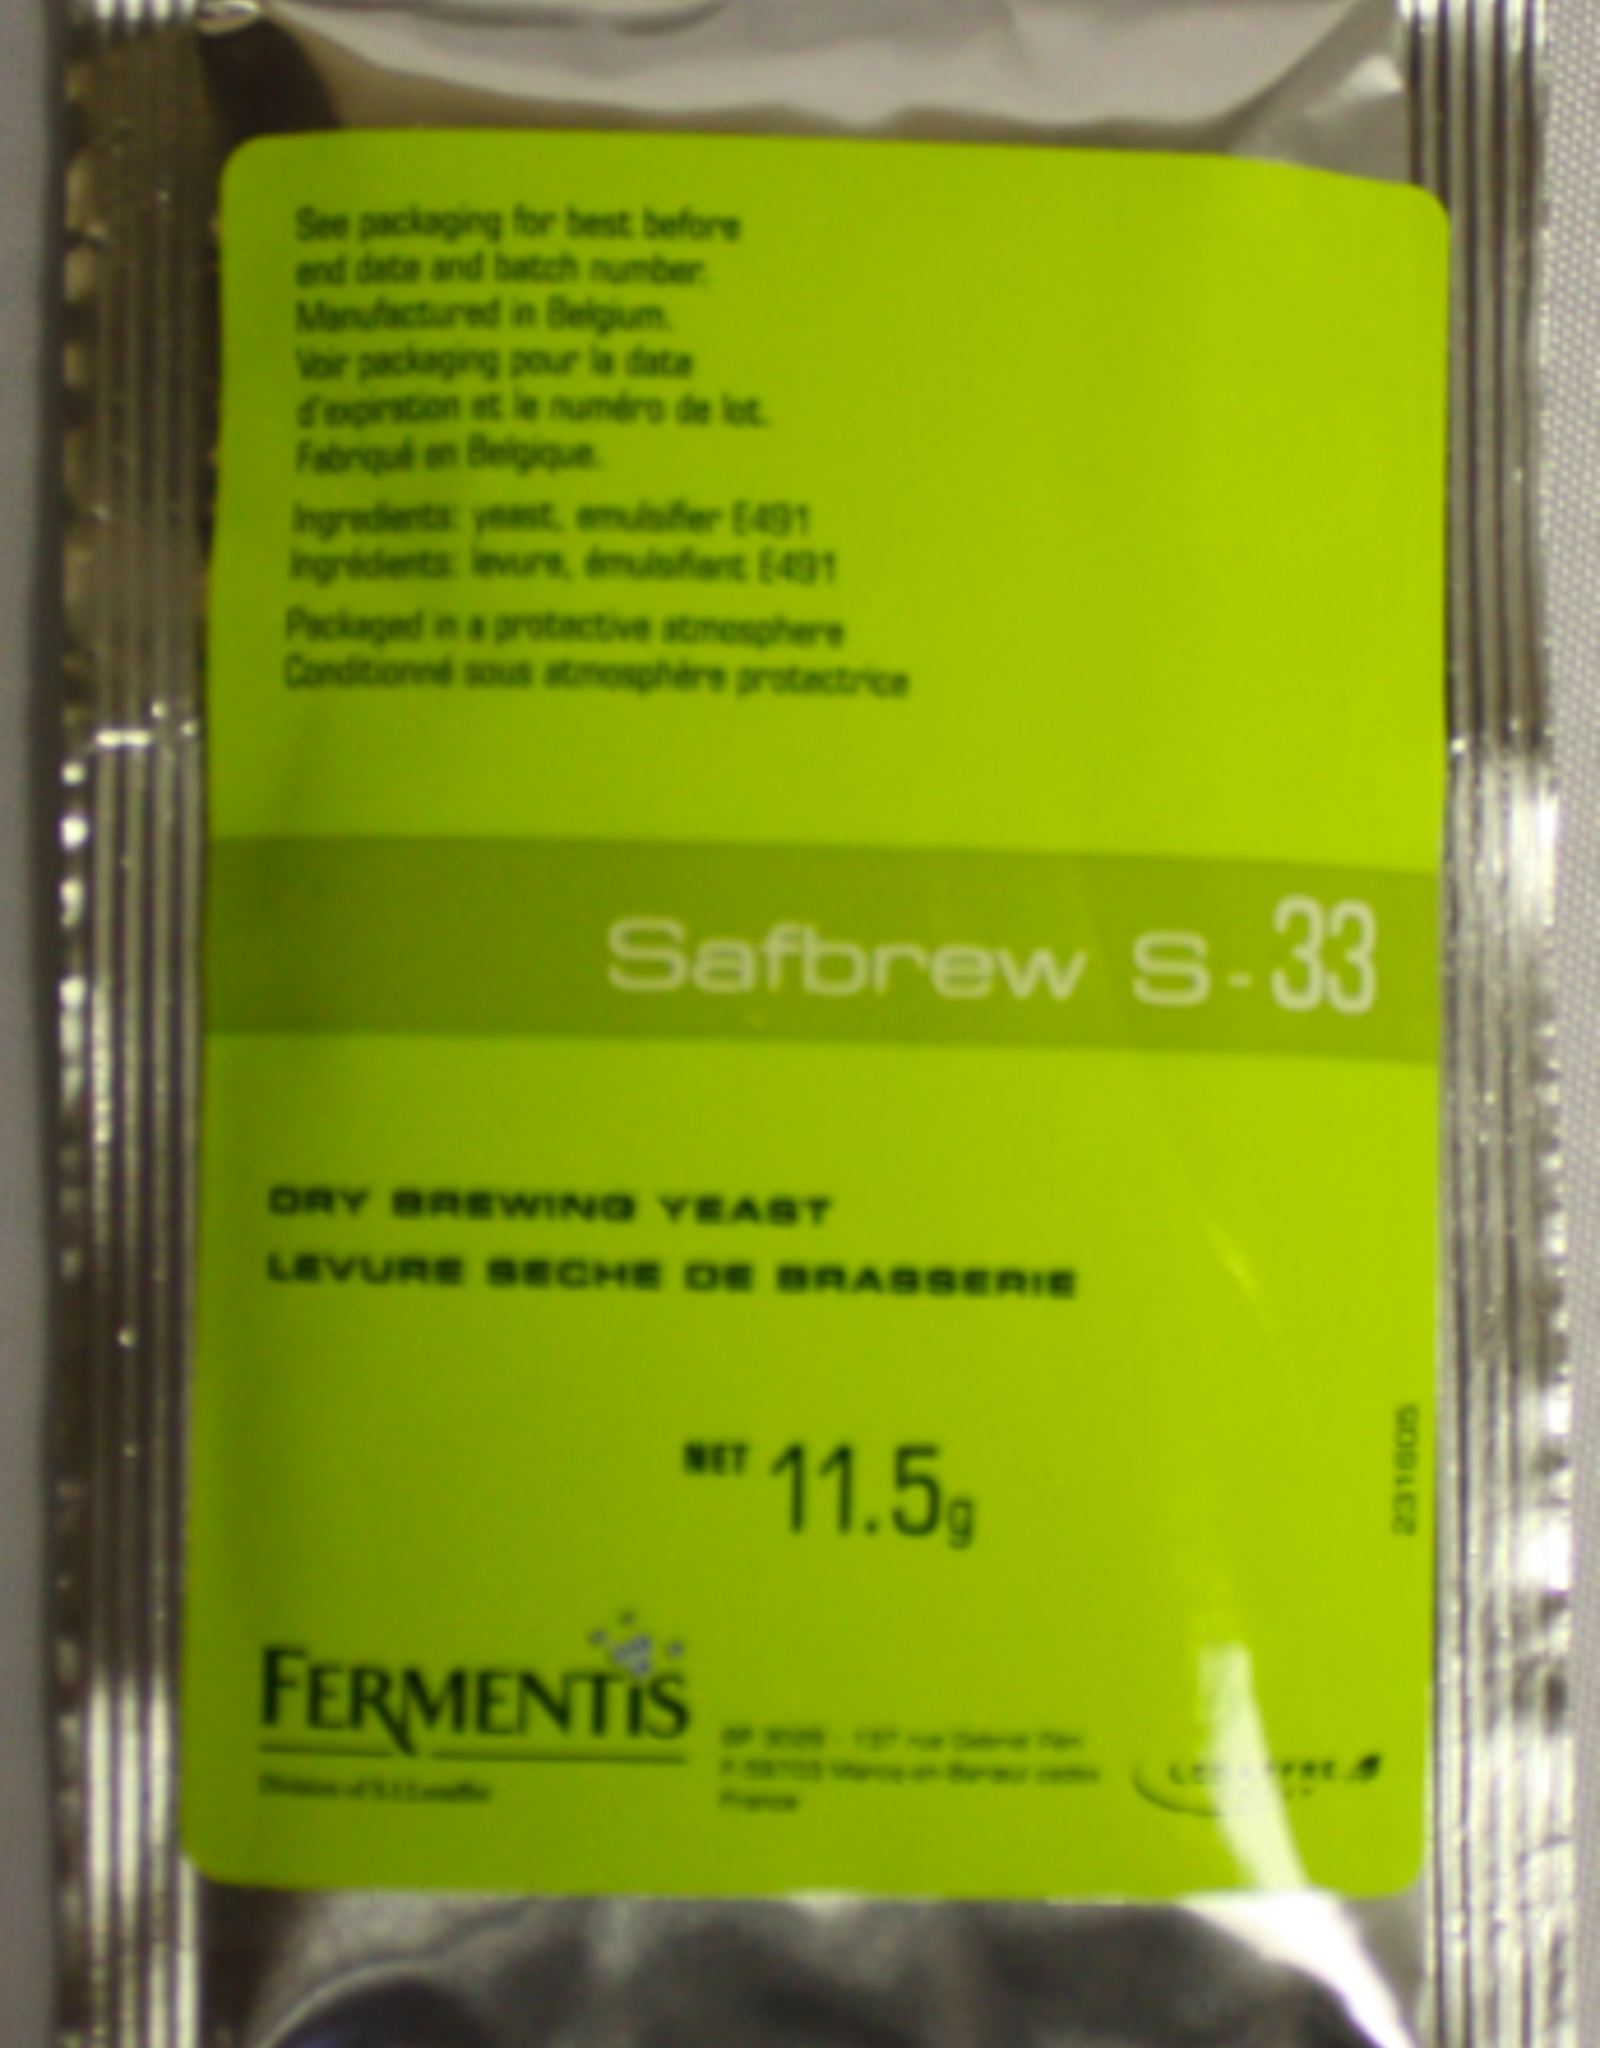 SAFALE S-33 DRY BREWING YEAST 11.5 GRAMS